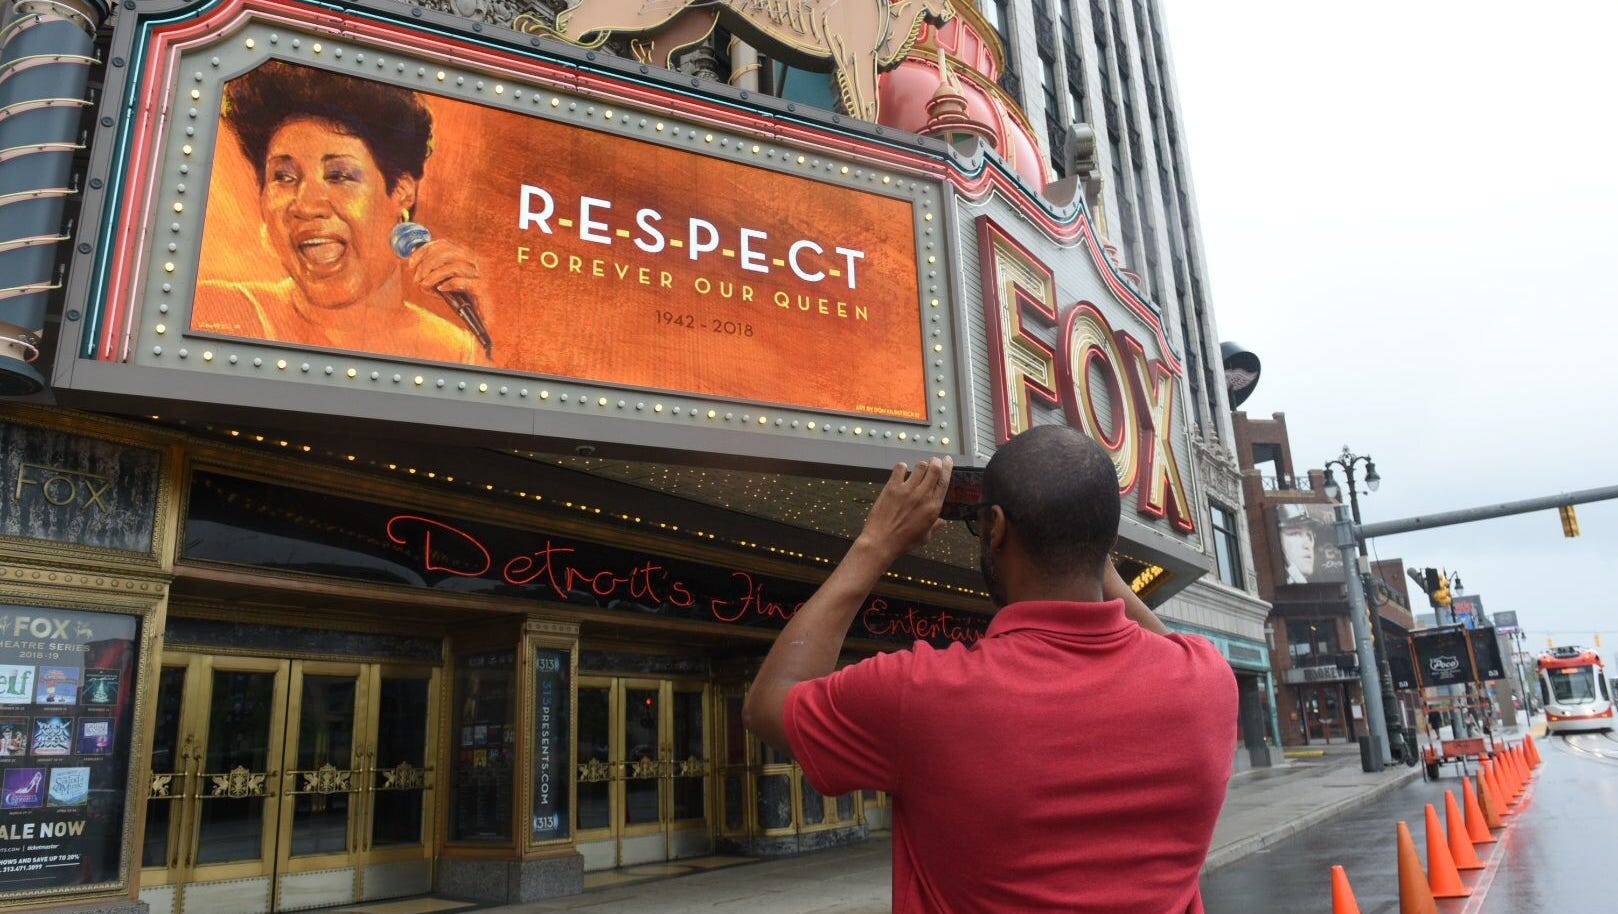 Editorial: For Aretha, nothing but R-E-S-P-E-C-T